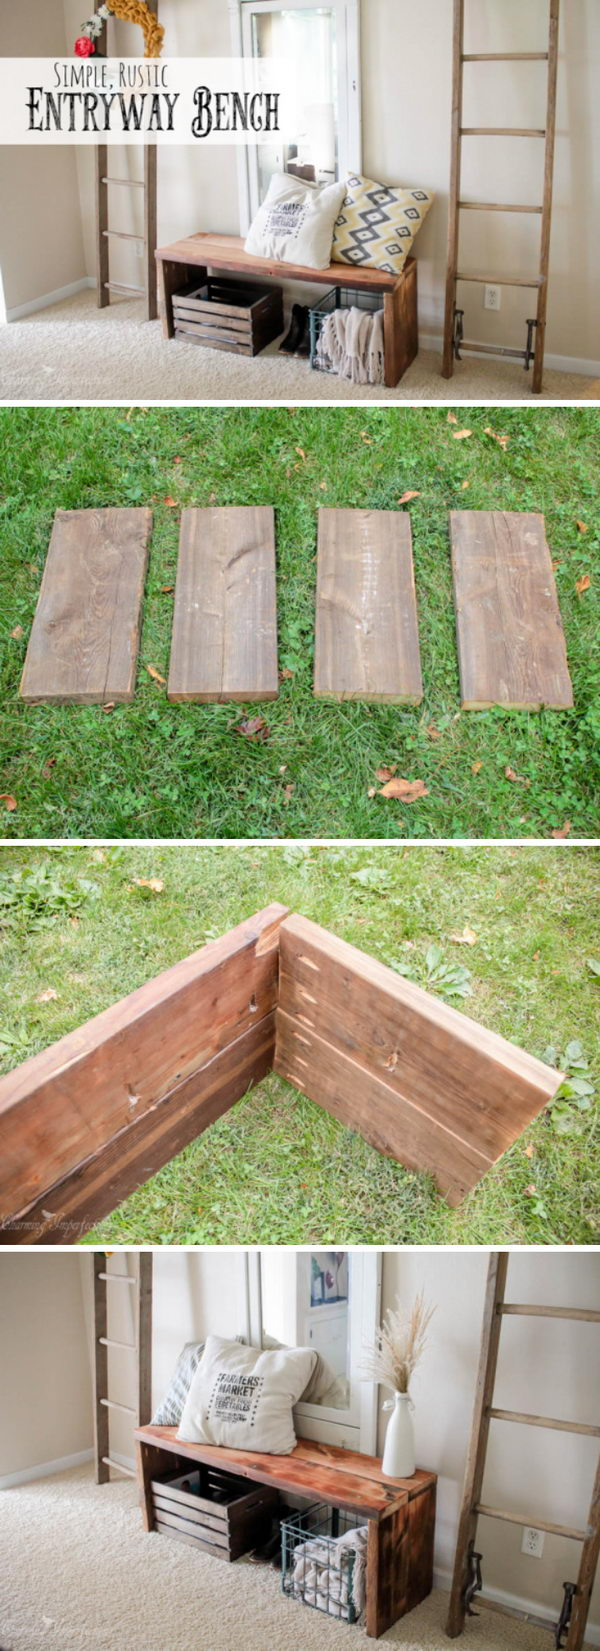 Amazingly Simple DIY Bench.